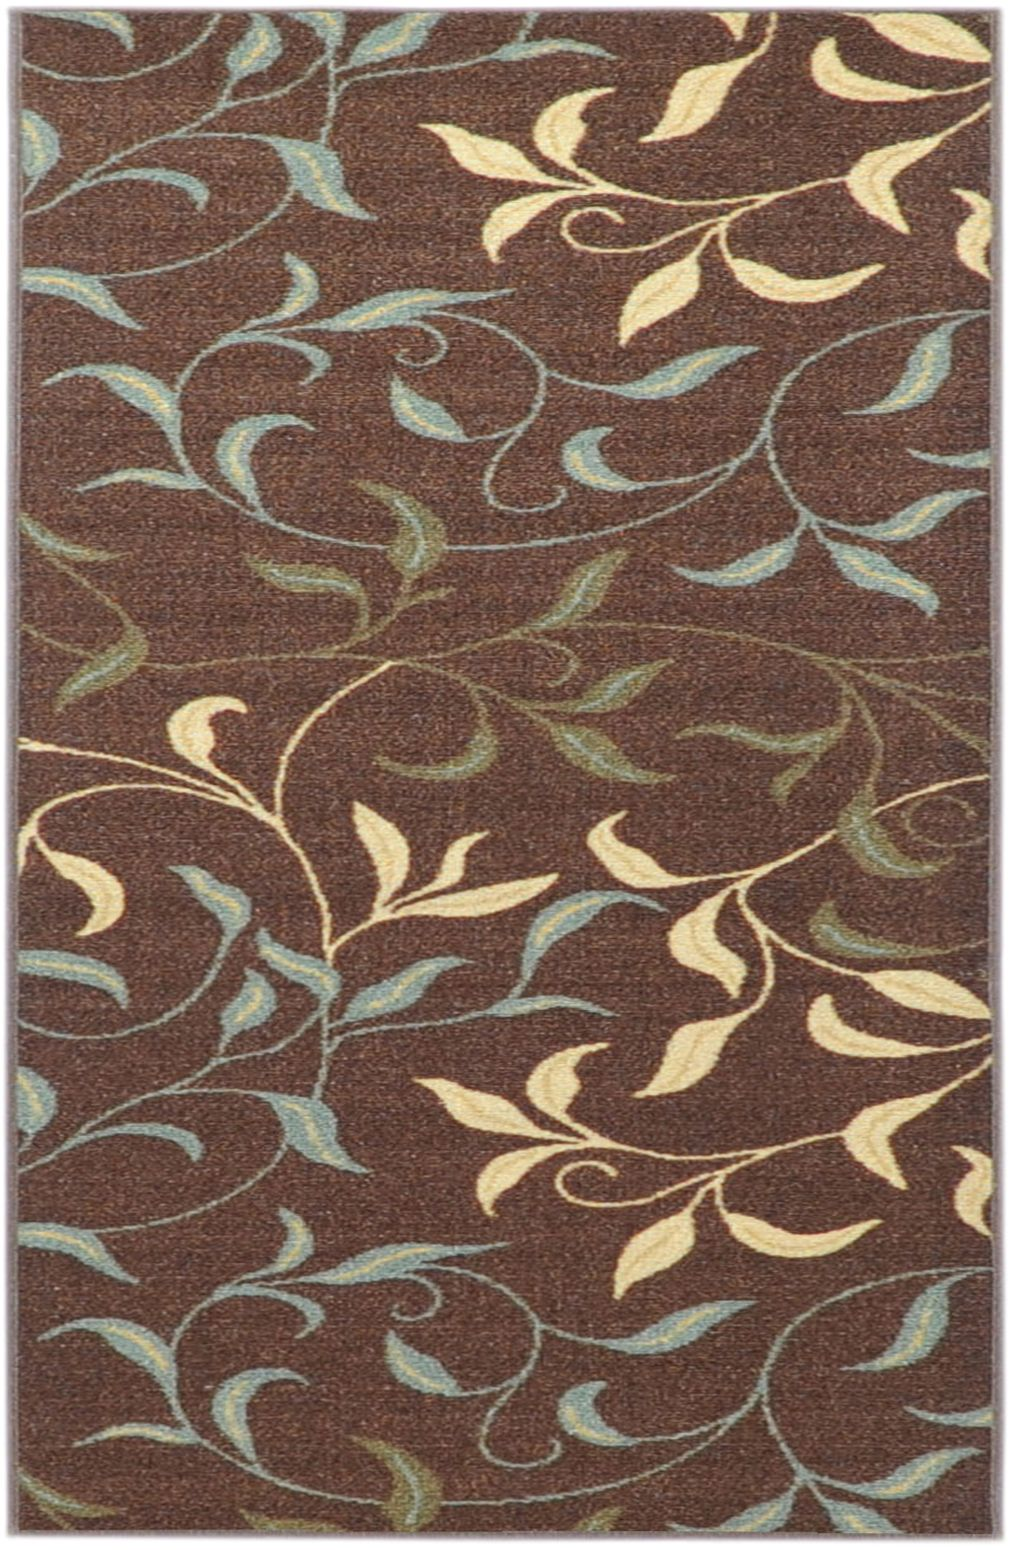 Kitchen Runner Rugs Washable Kitchen Rubber Backed Runner Rugs Rubber Back Non Skid Brown